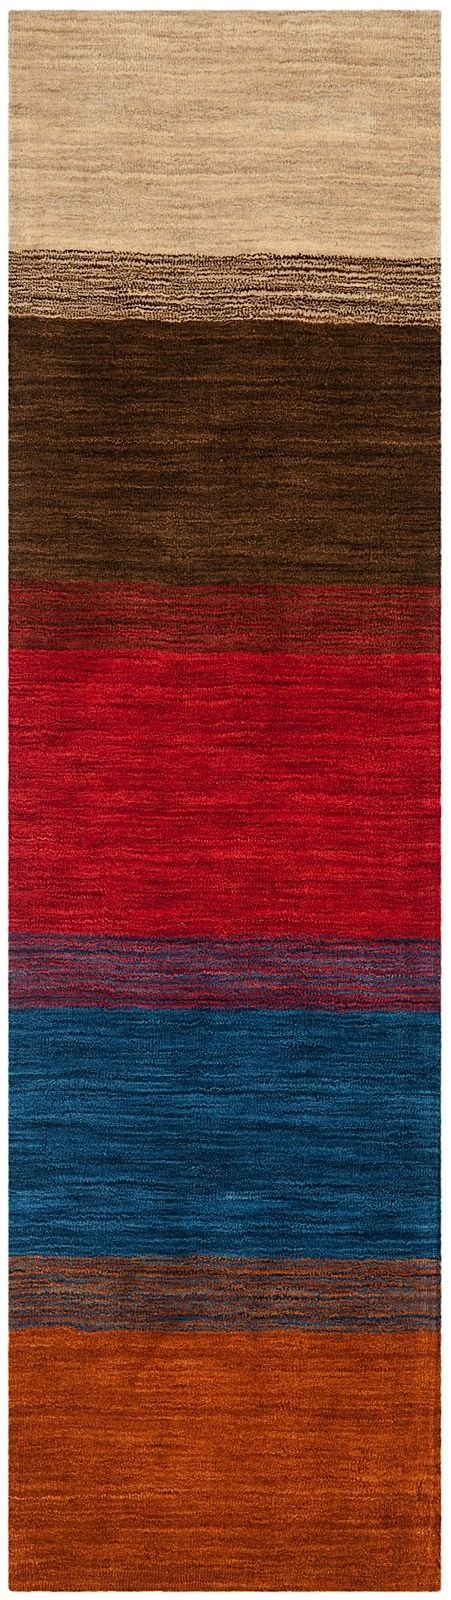 safavieh himalaya shag area rug collection